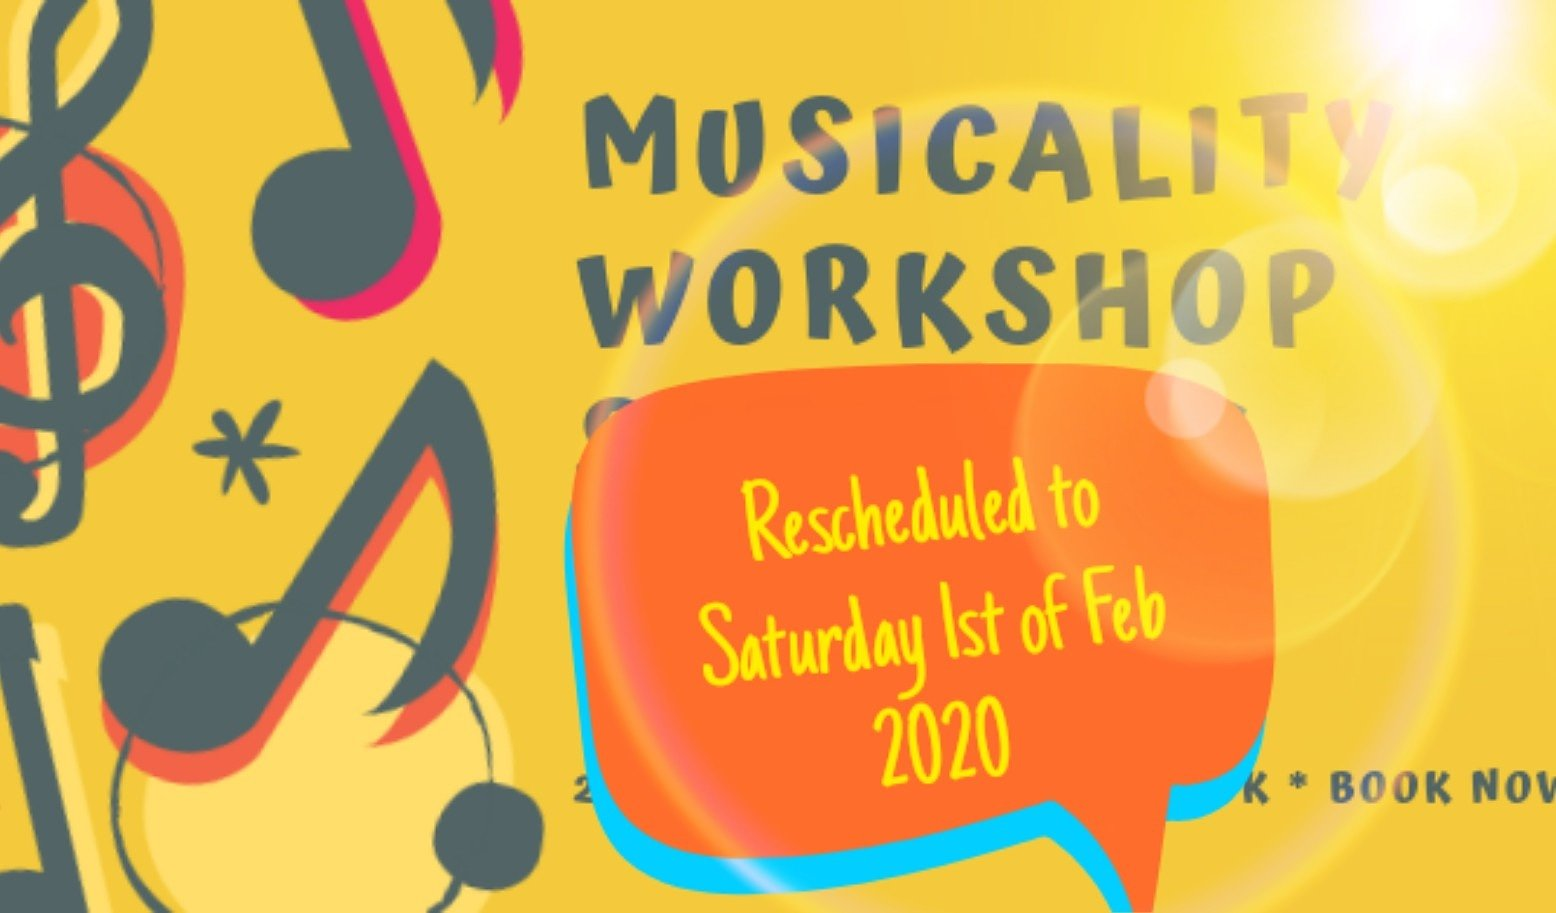 musicality-workshop-feb-first